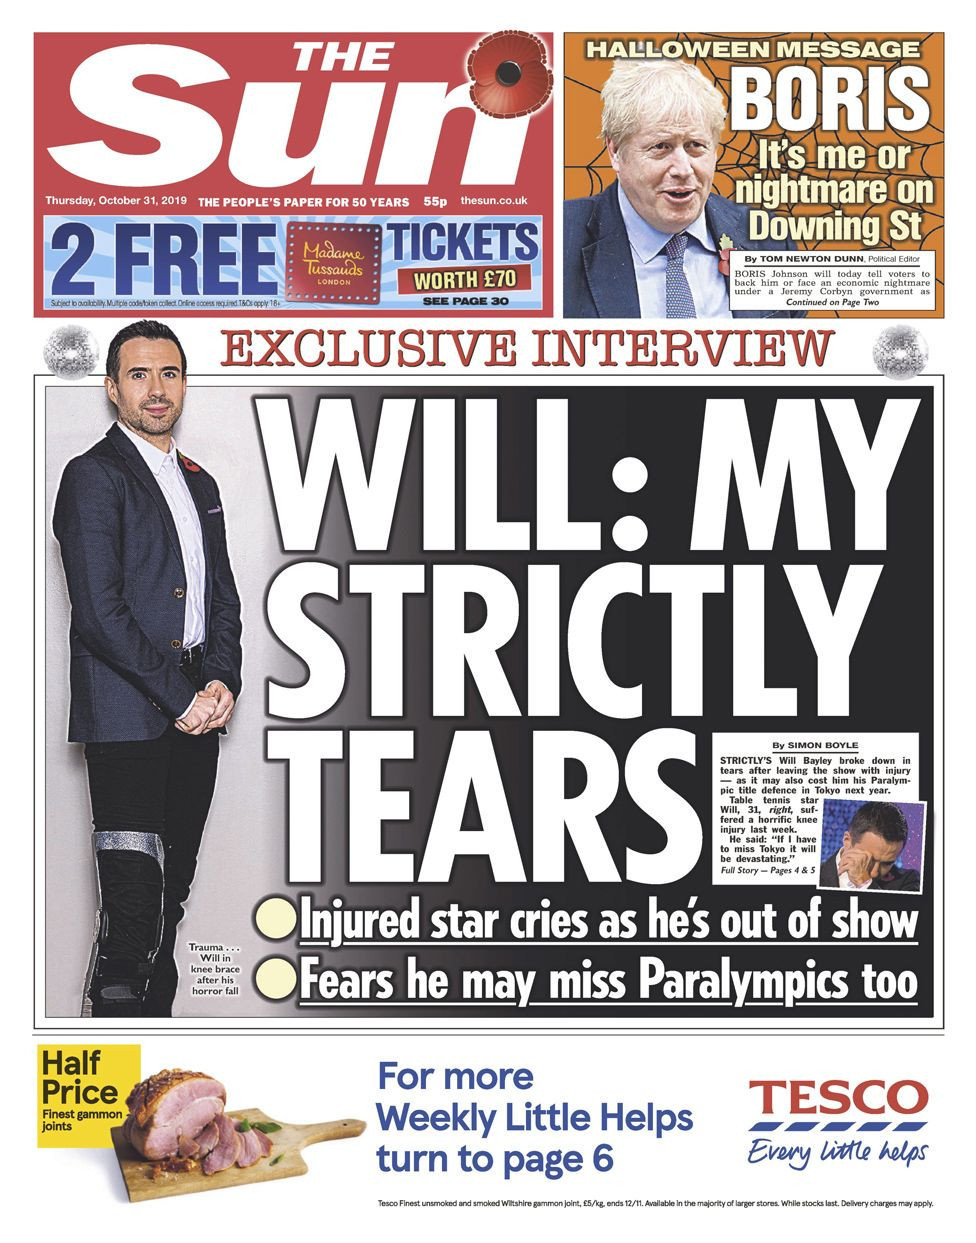 Will Bayley's withdrawal from Strictly Come Dancing was front page news on Britain's biggest selling newspaper ©The Sun